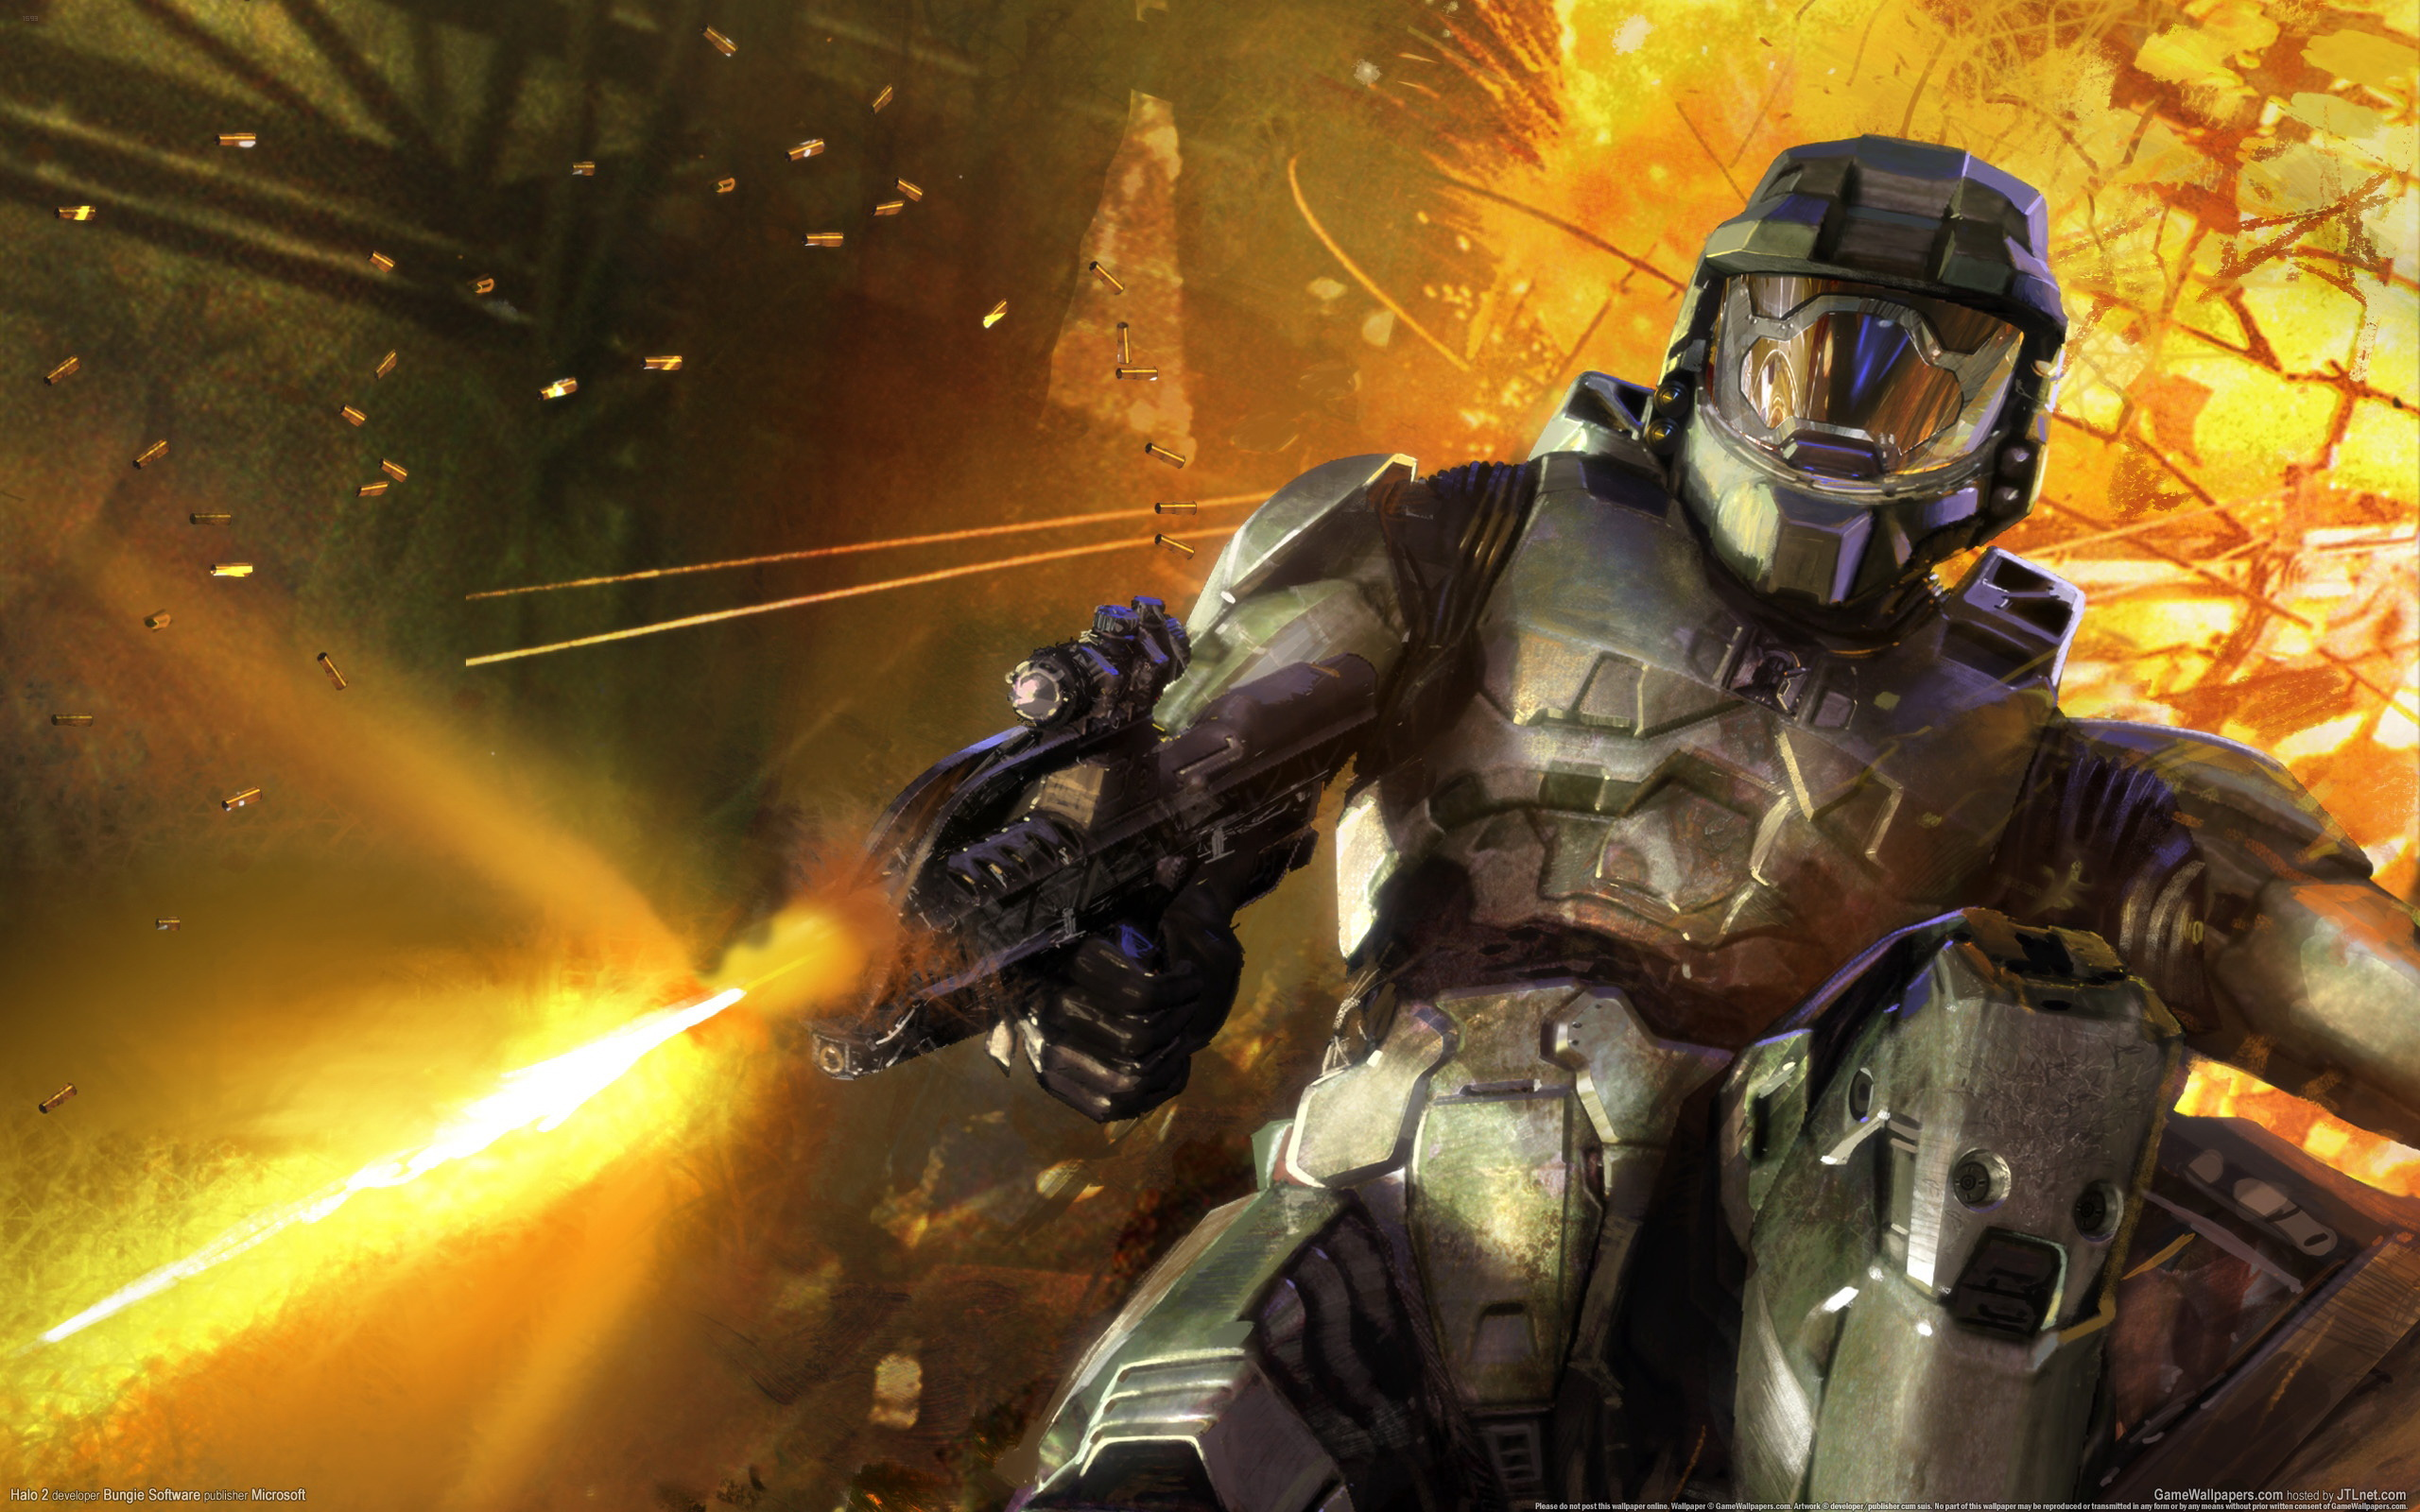 13 Halo 2 HD Wallpapers